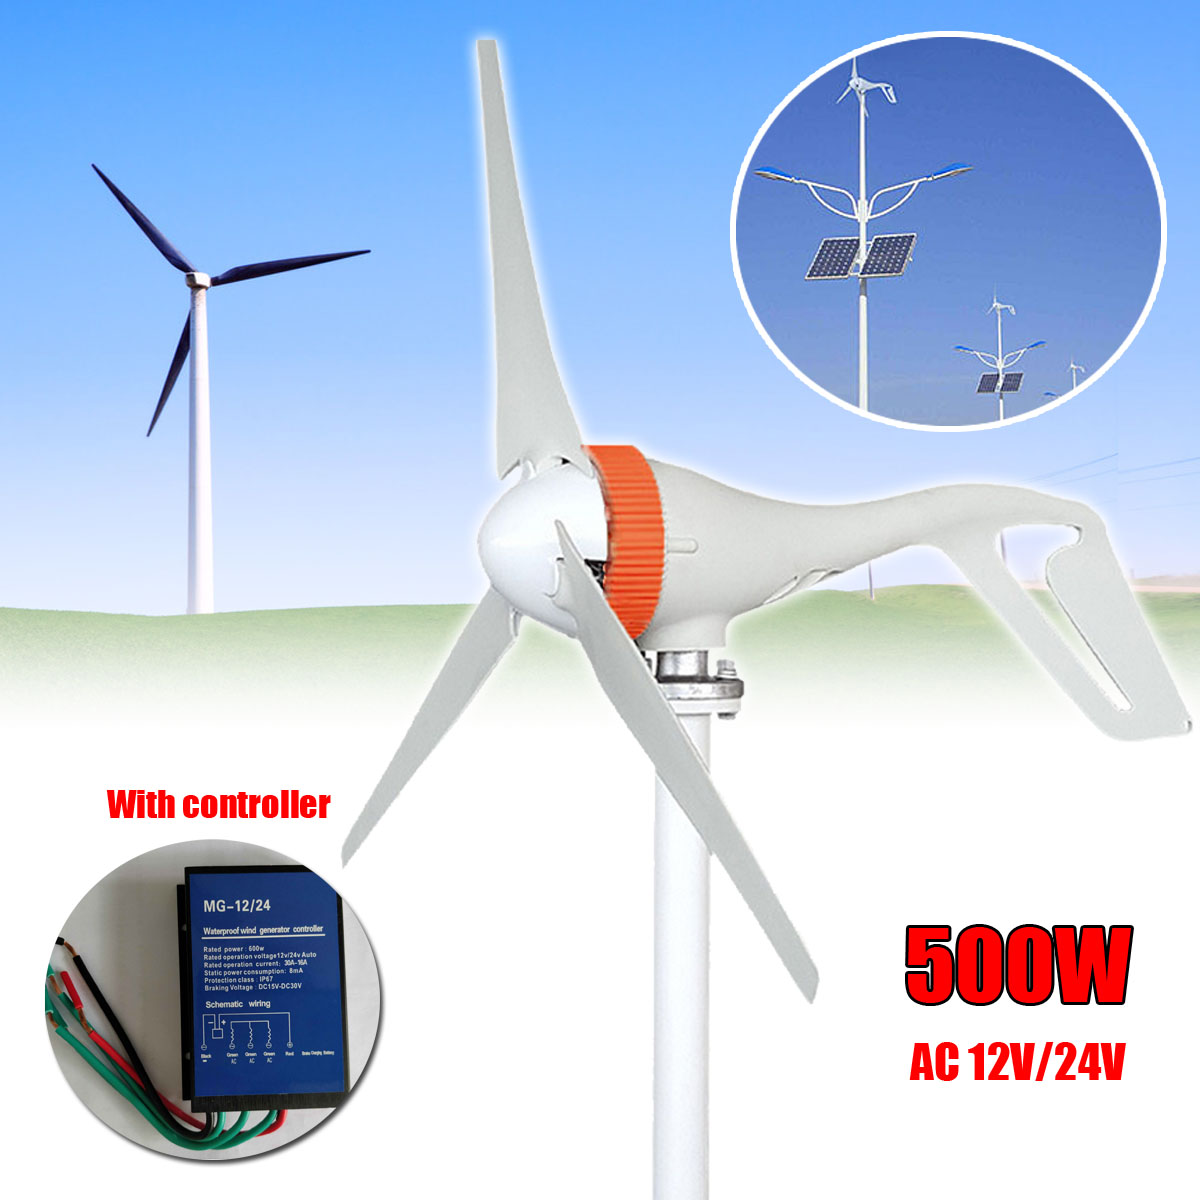 AC 12V/24V 500W 3 Blades Wind Generator Mini Wind Turbines Miniature Wind Turbines Generator With Controller for home use цена